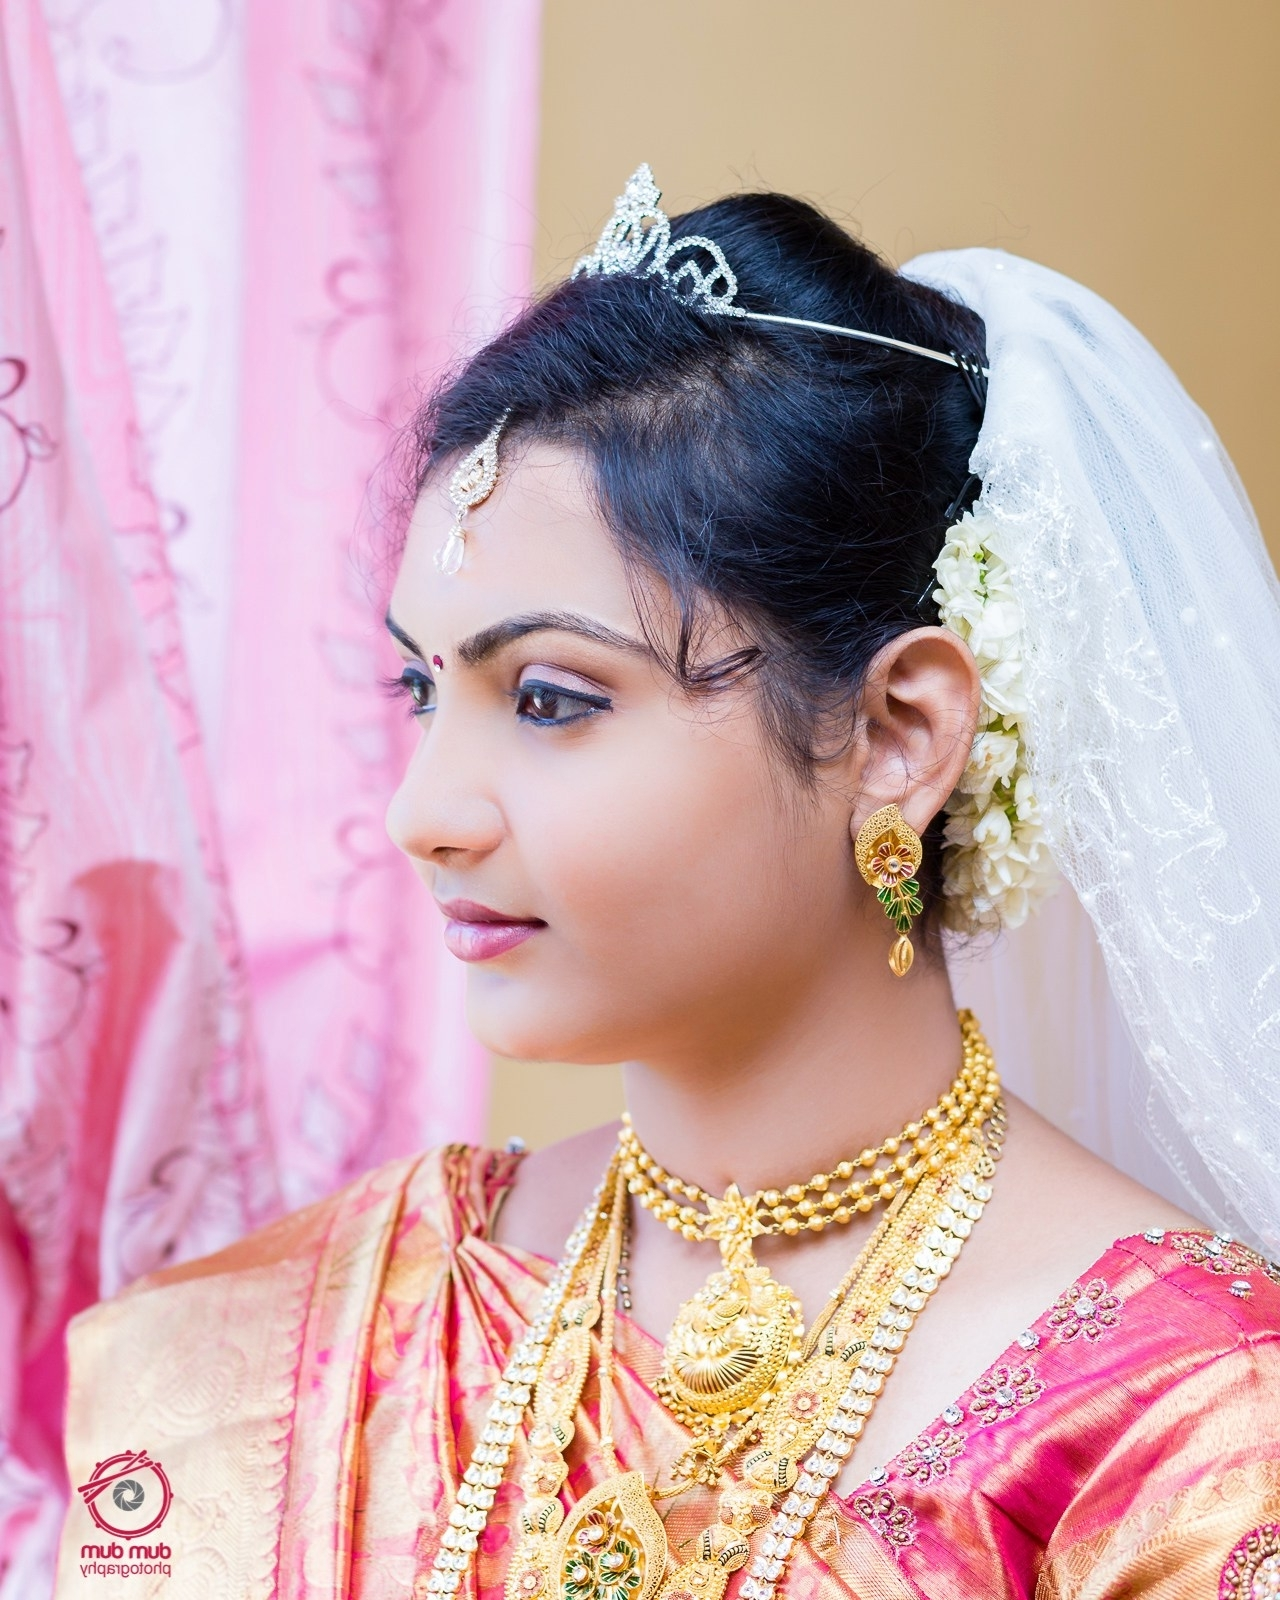 Recent Christian Bride Wedding Hairstyles With Regard To Wedding Hairstyles Christian Bride Unique A Tamil Christian Wedding (View 13 of 15)